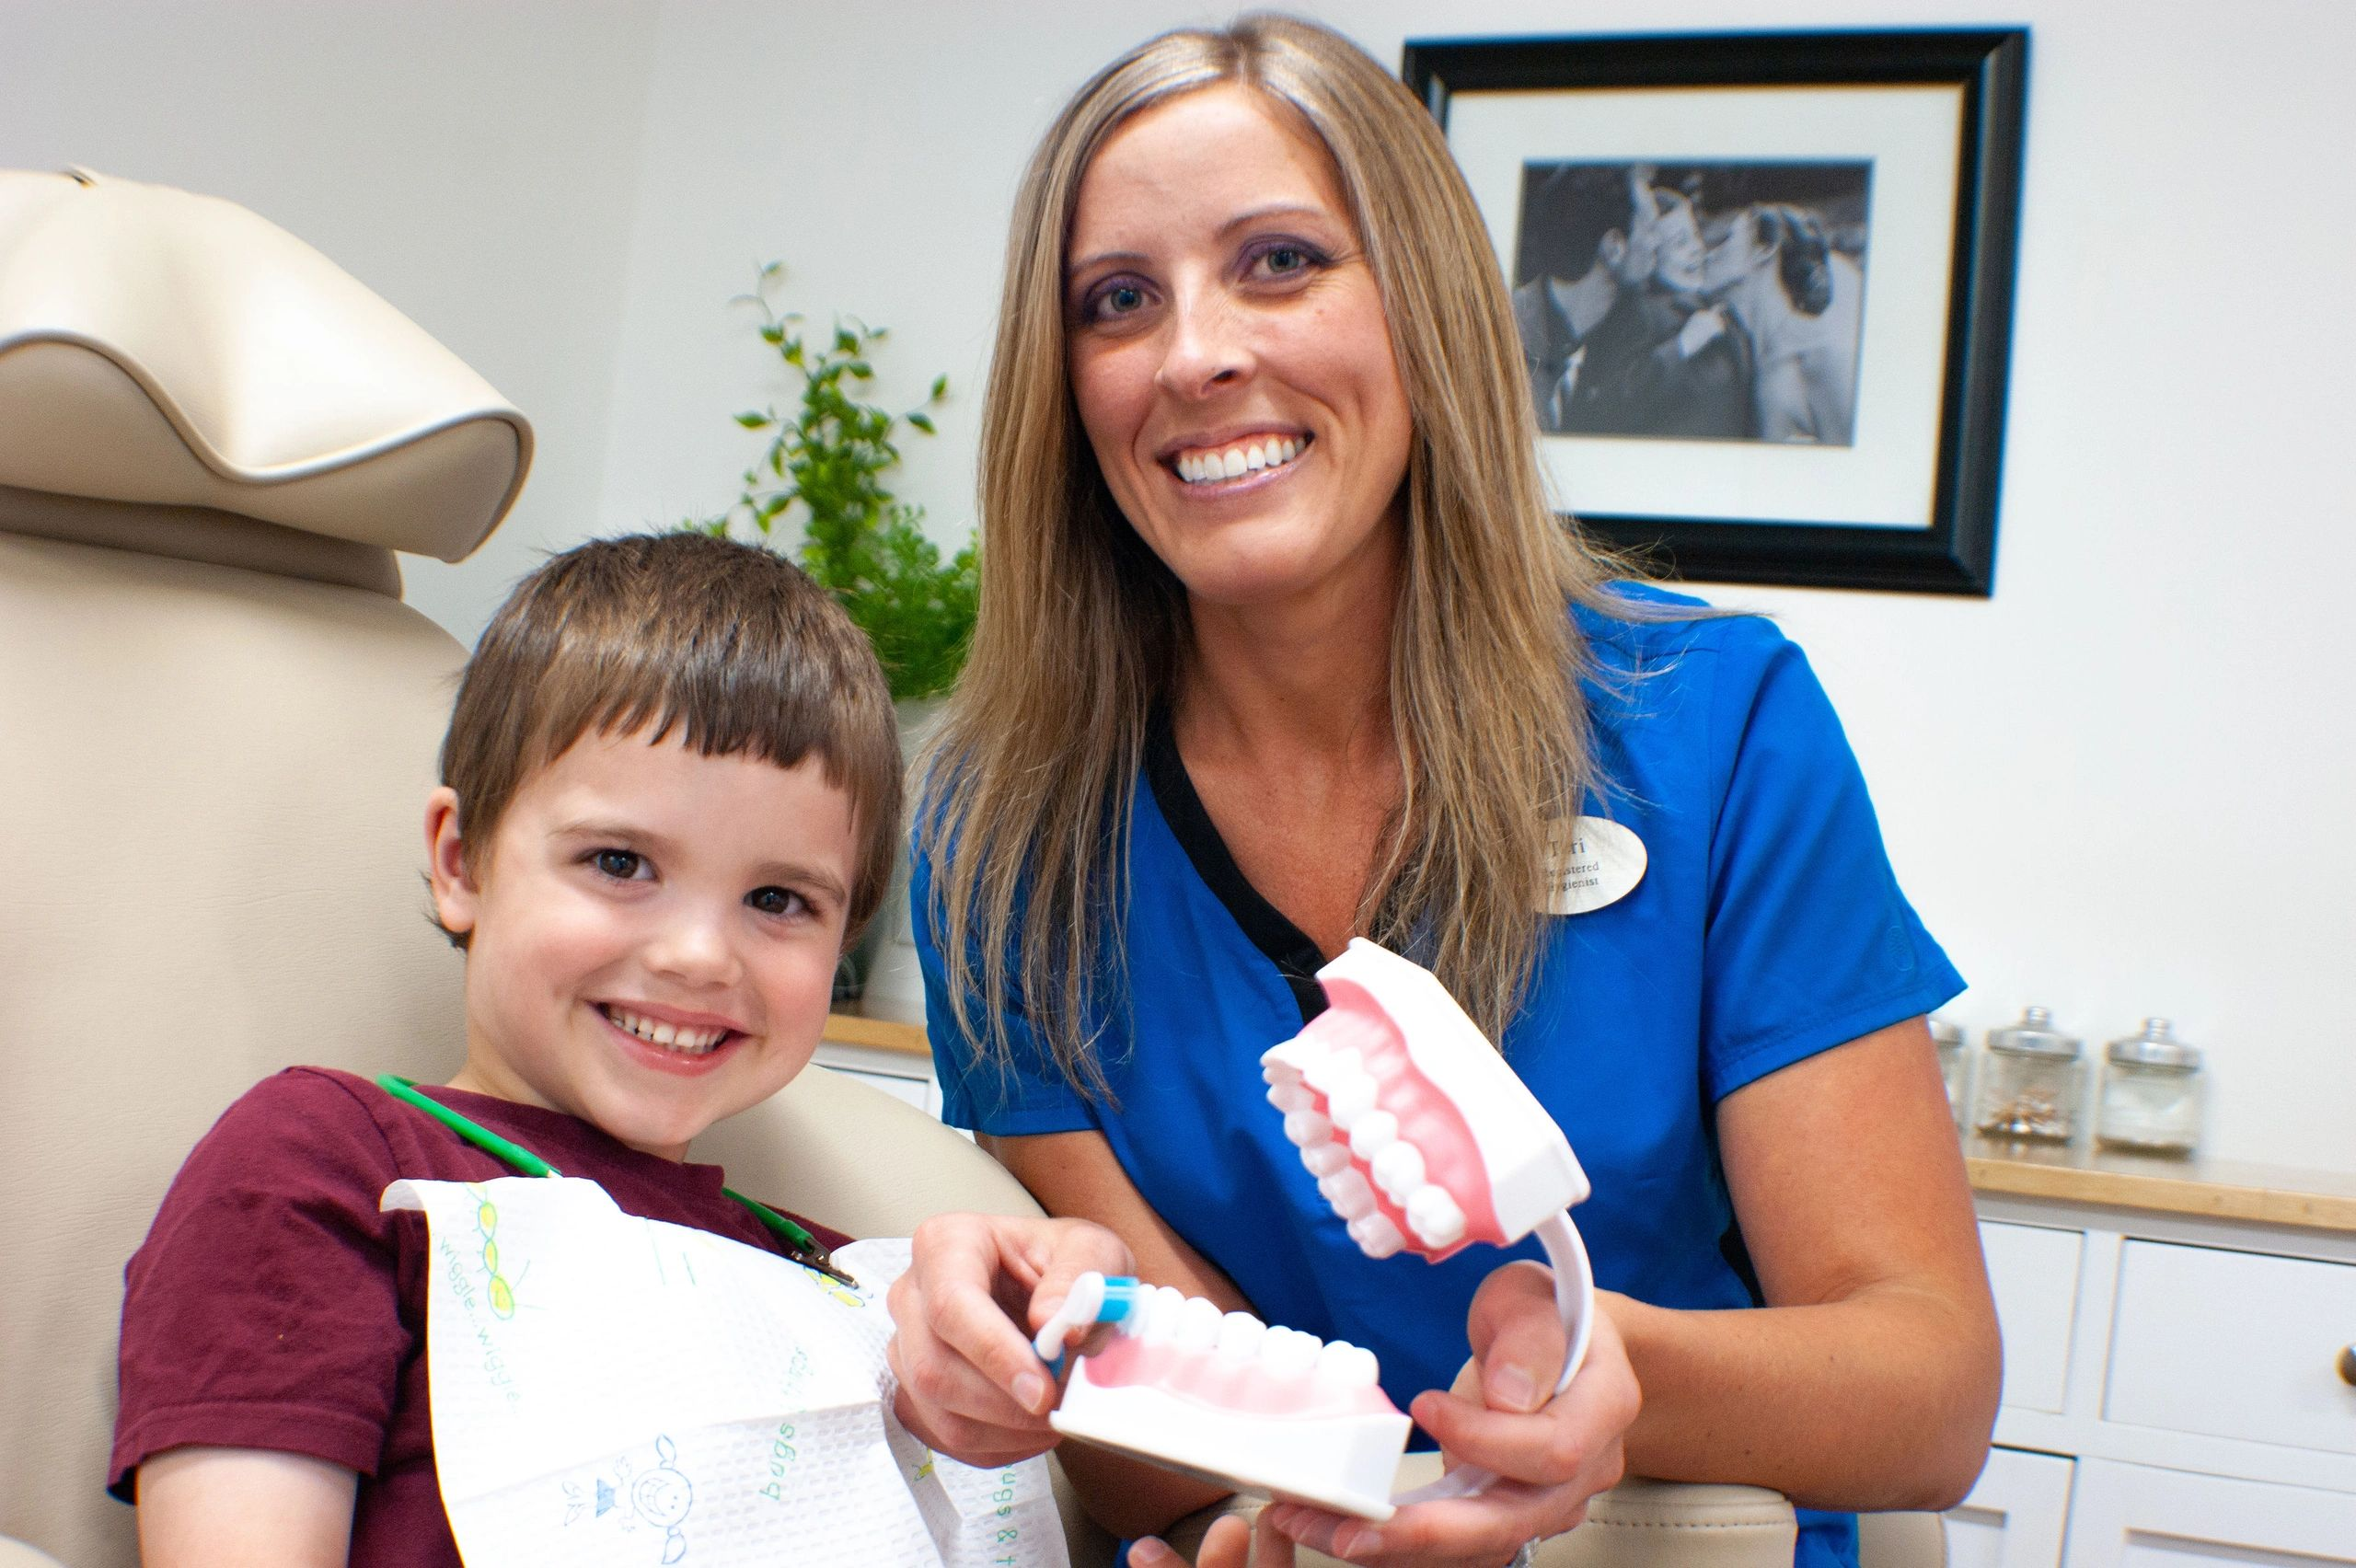 Children's teeth cleaning in Fredericton. Join the sugar bug free club.